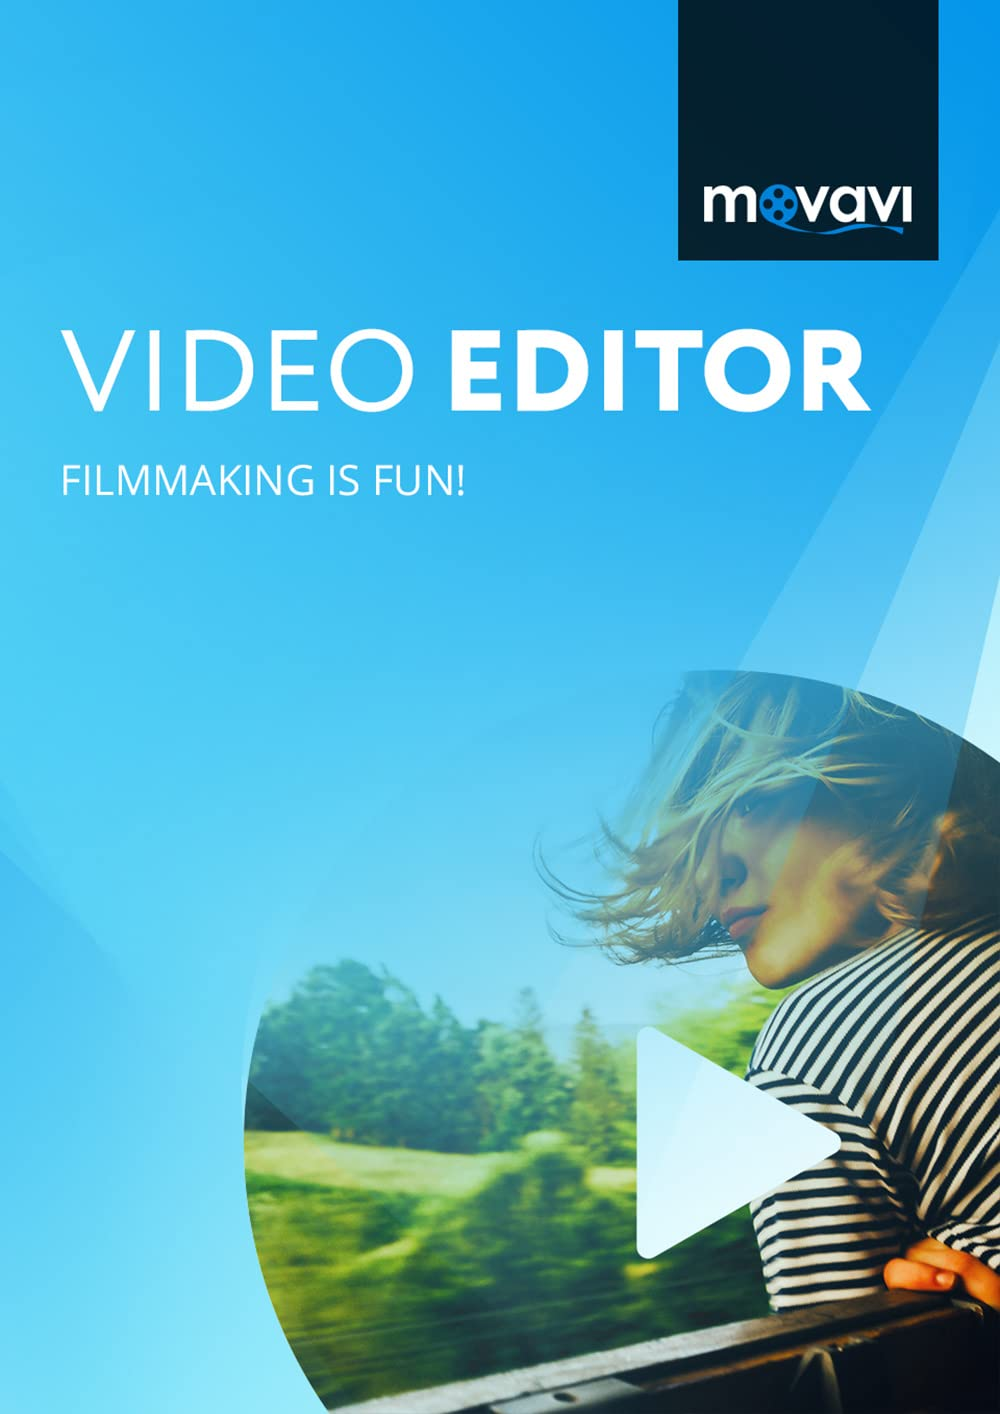 B076BRVY8J Movavi Video Editor 14 Personal Edition [Download] 71DstZes5zL.